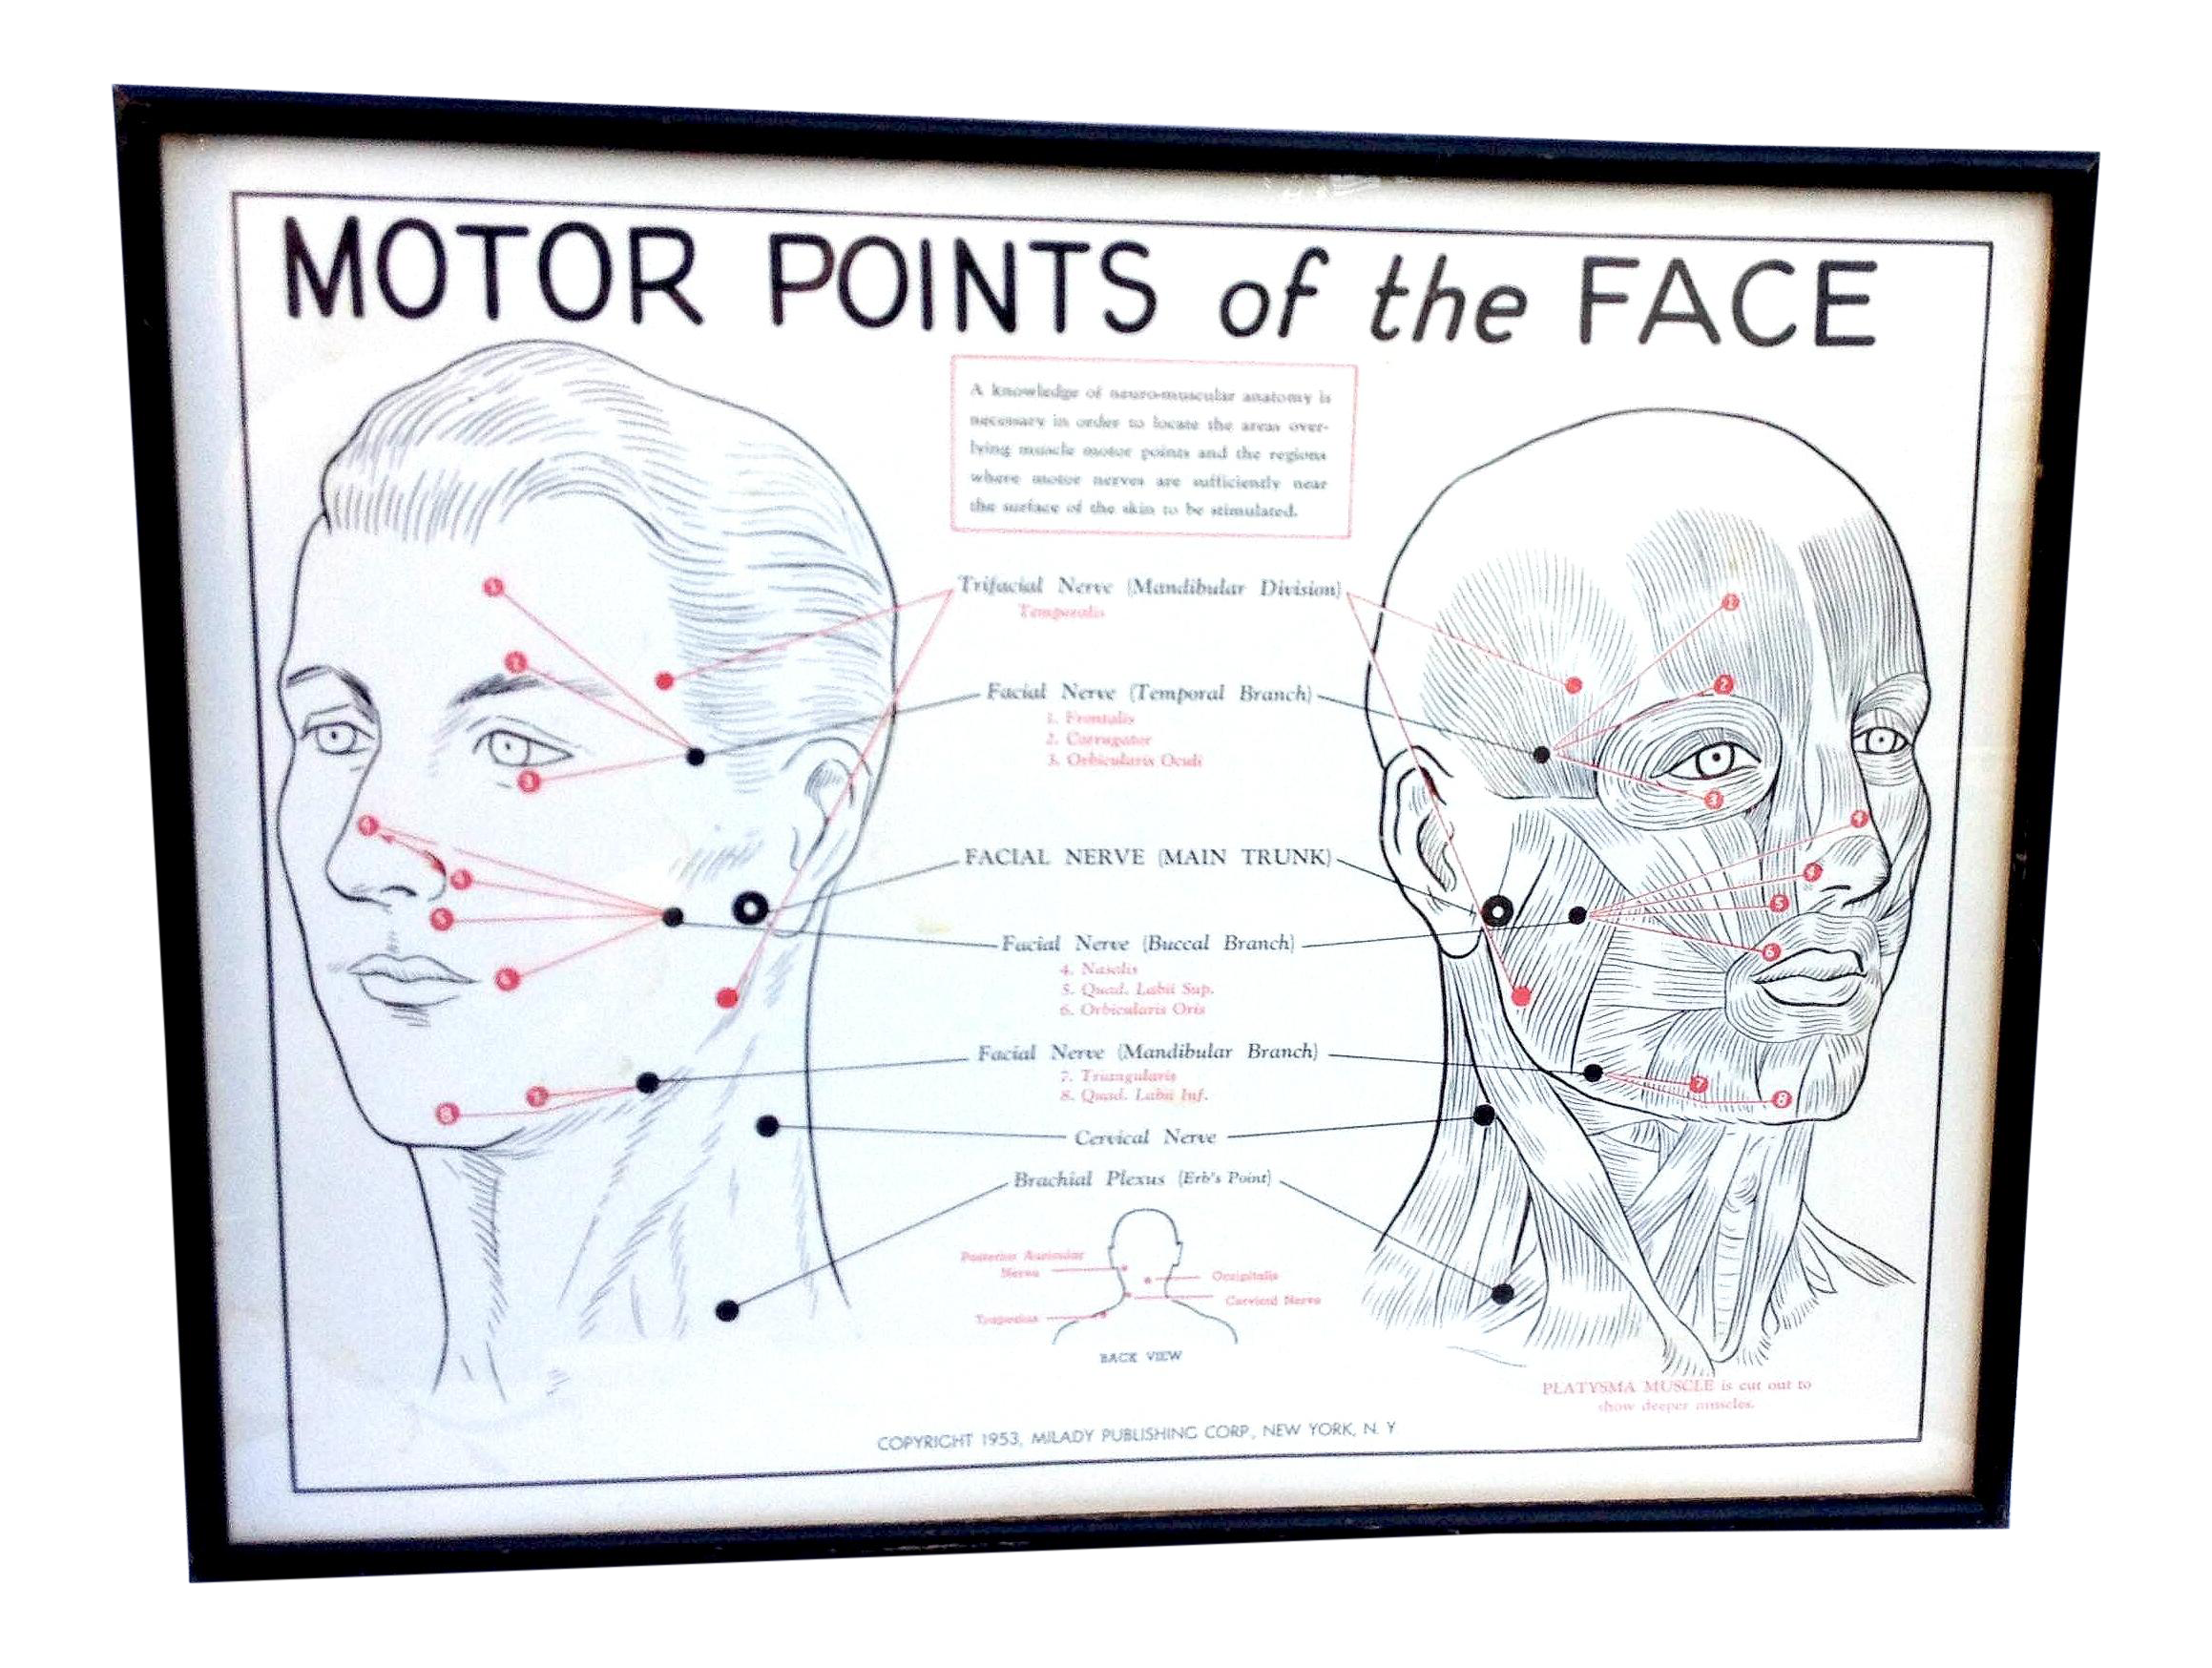 1953 Motor Points Of The Face Diagram Chairish